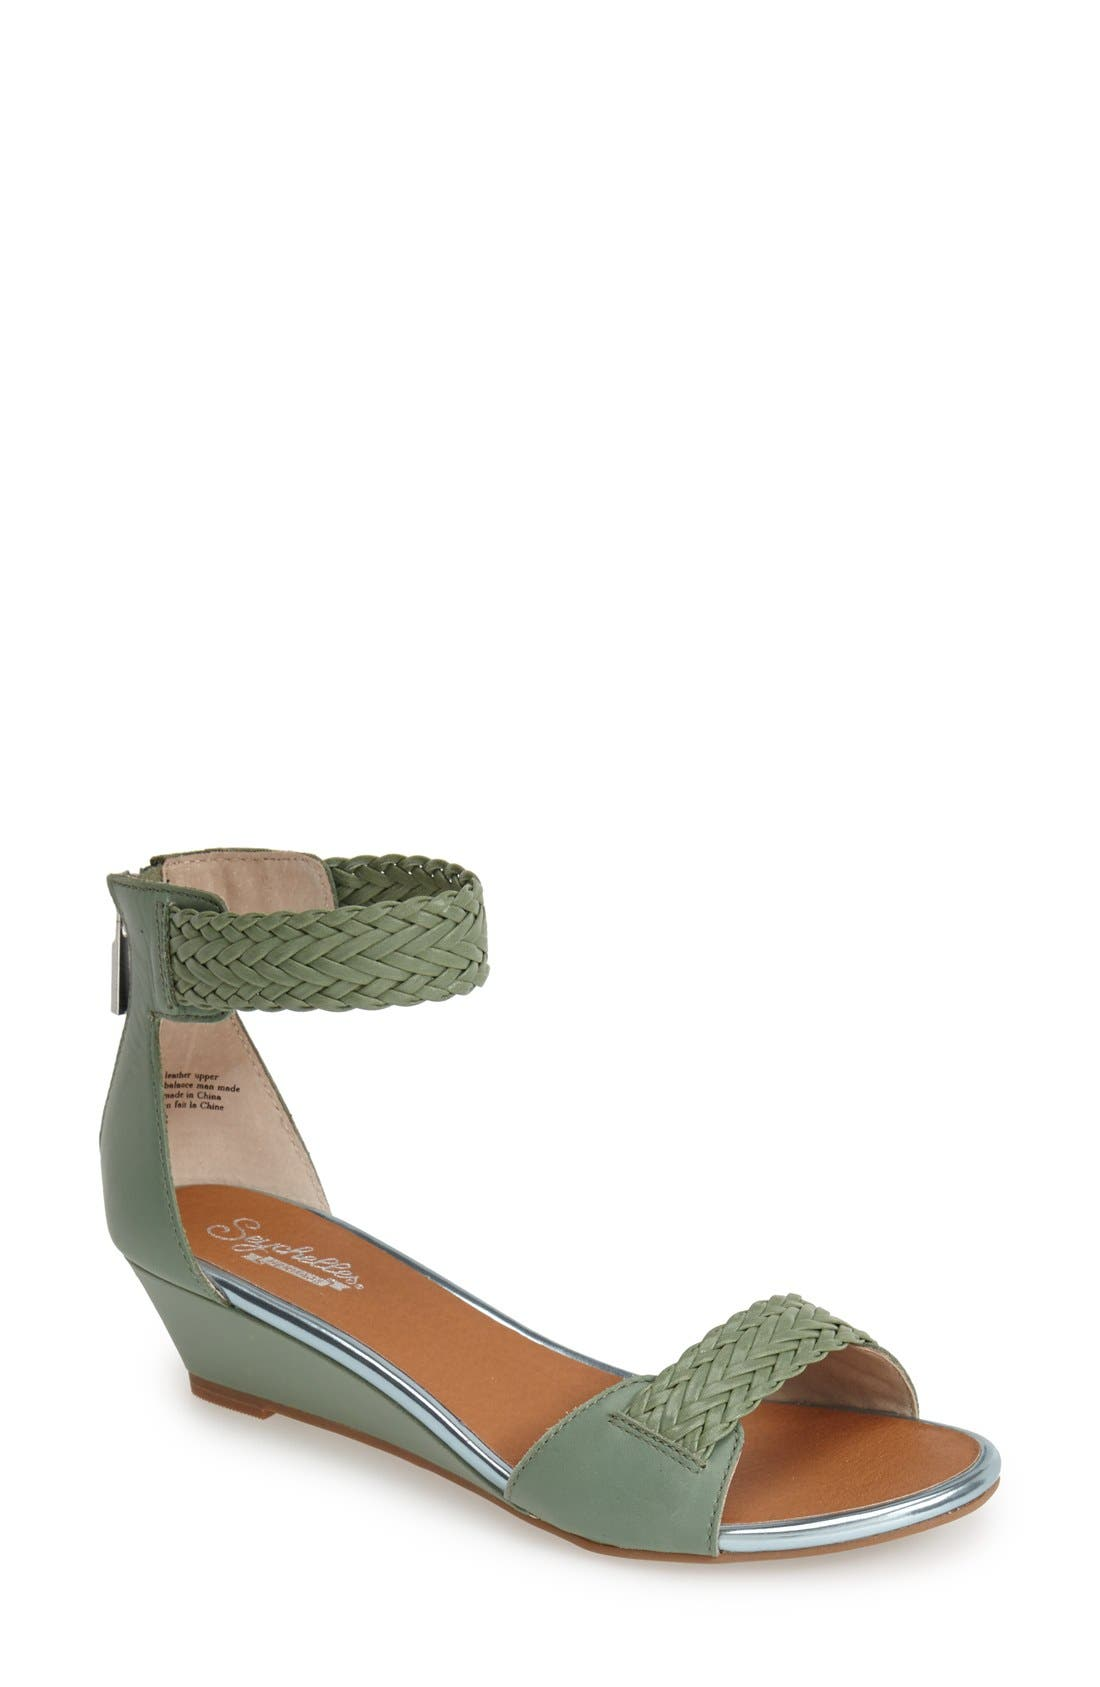 Alternate Image 1 Selected - Seychelles 'Spelling Bee' Leather Ankle Cuff Wedge Sandal (Women)